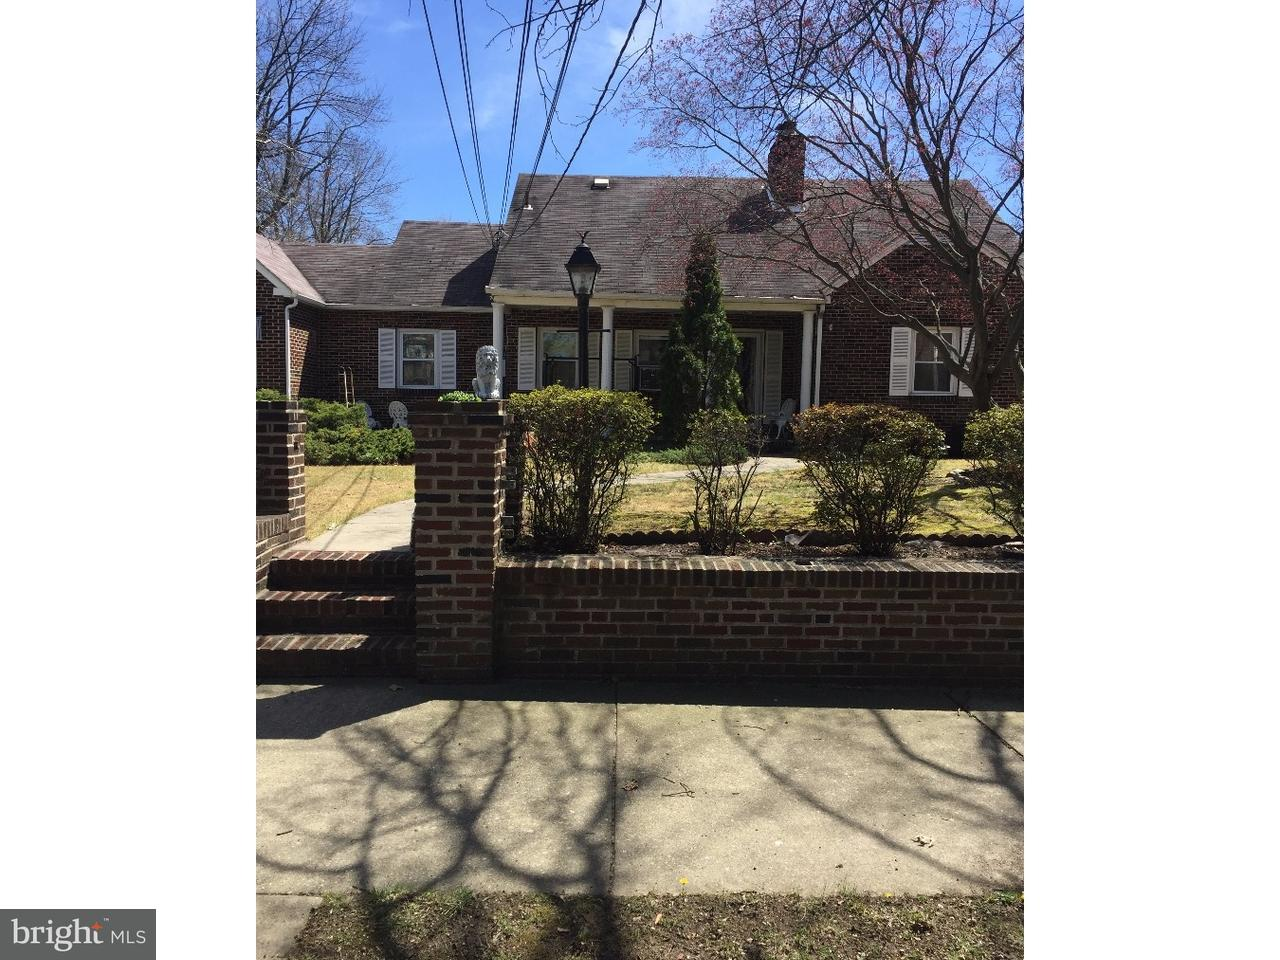 Quadraplex for Sale at 20 KENDALL BLVD Oaklyn, New Jersey 08107 United States